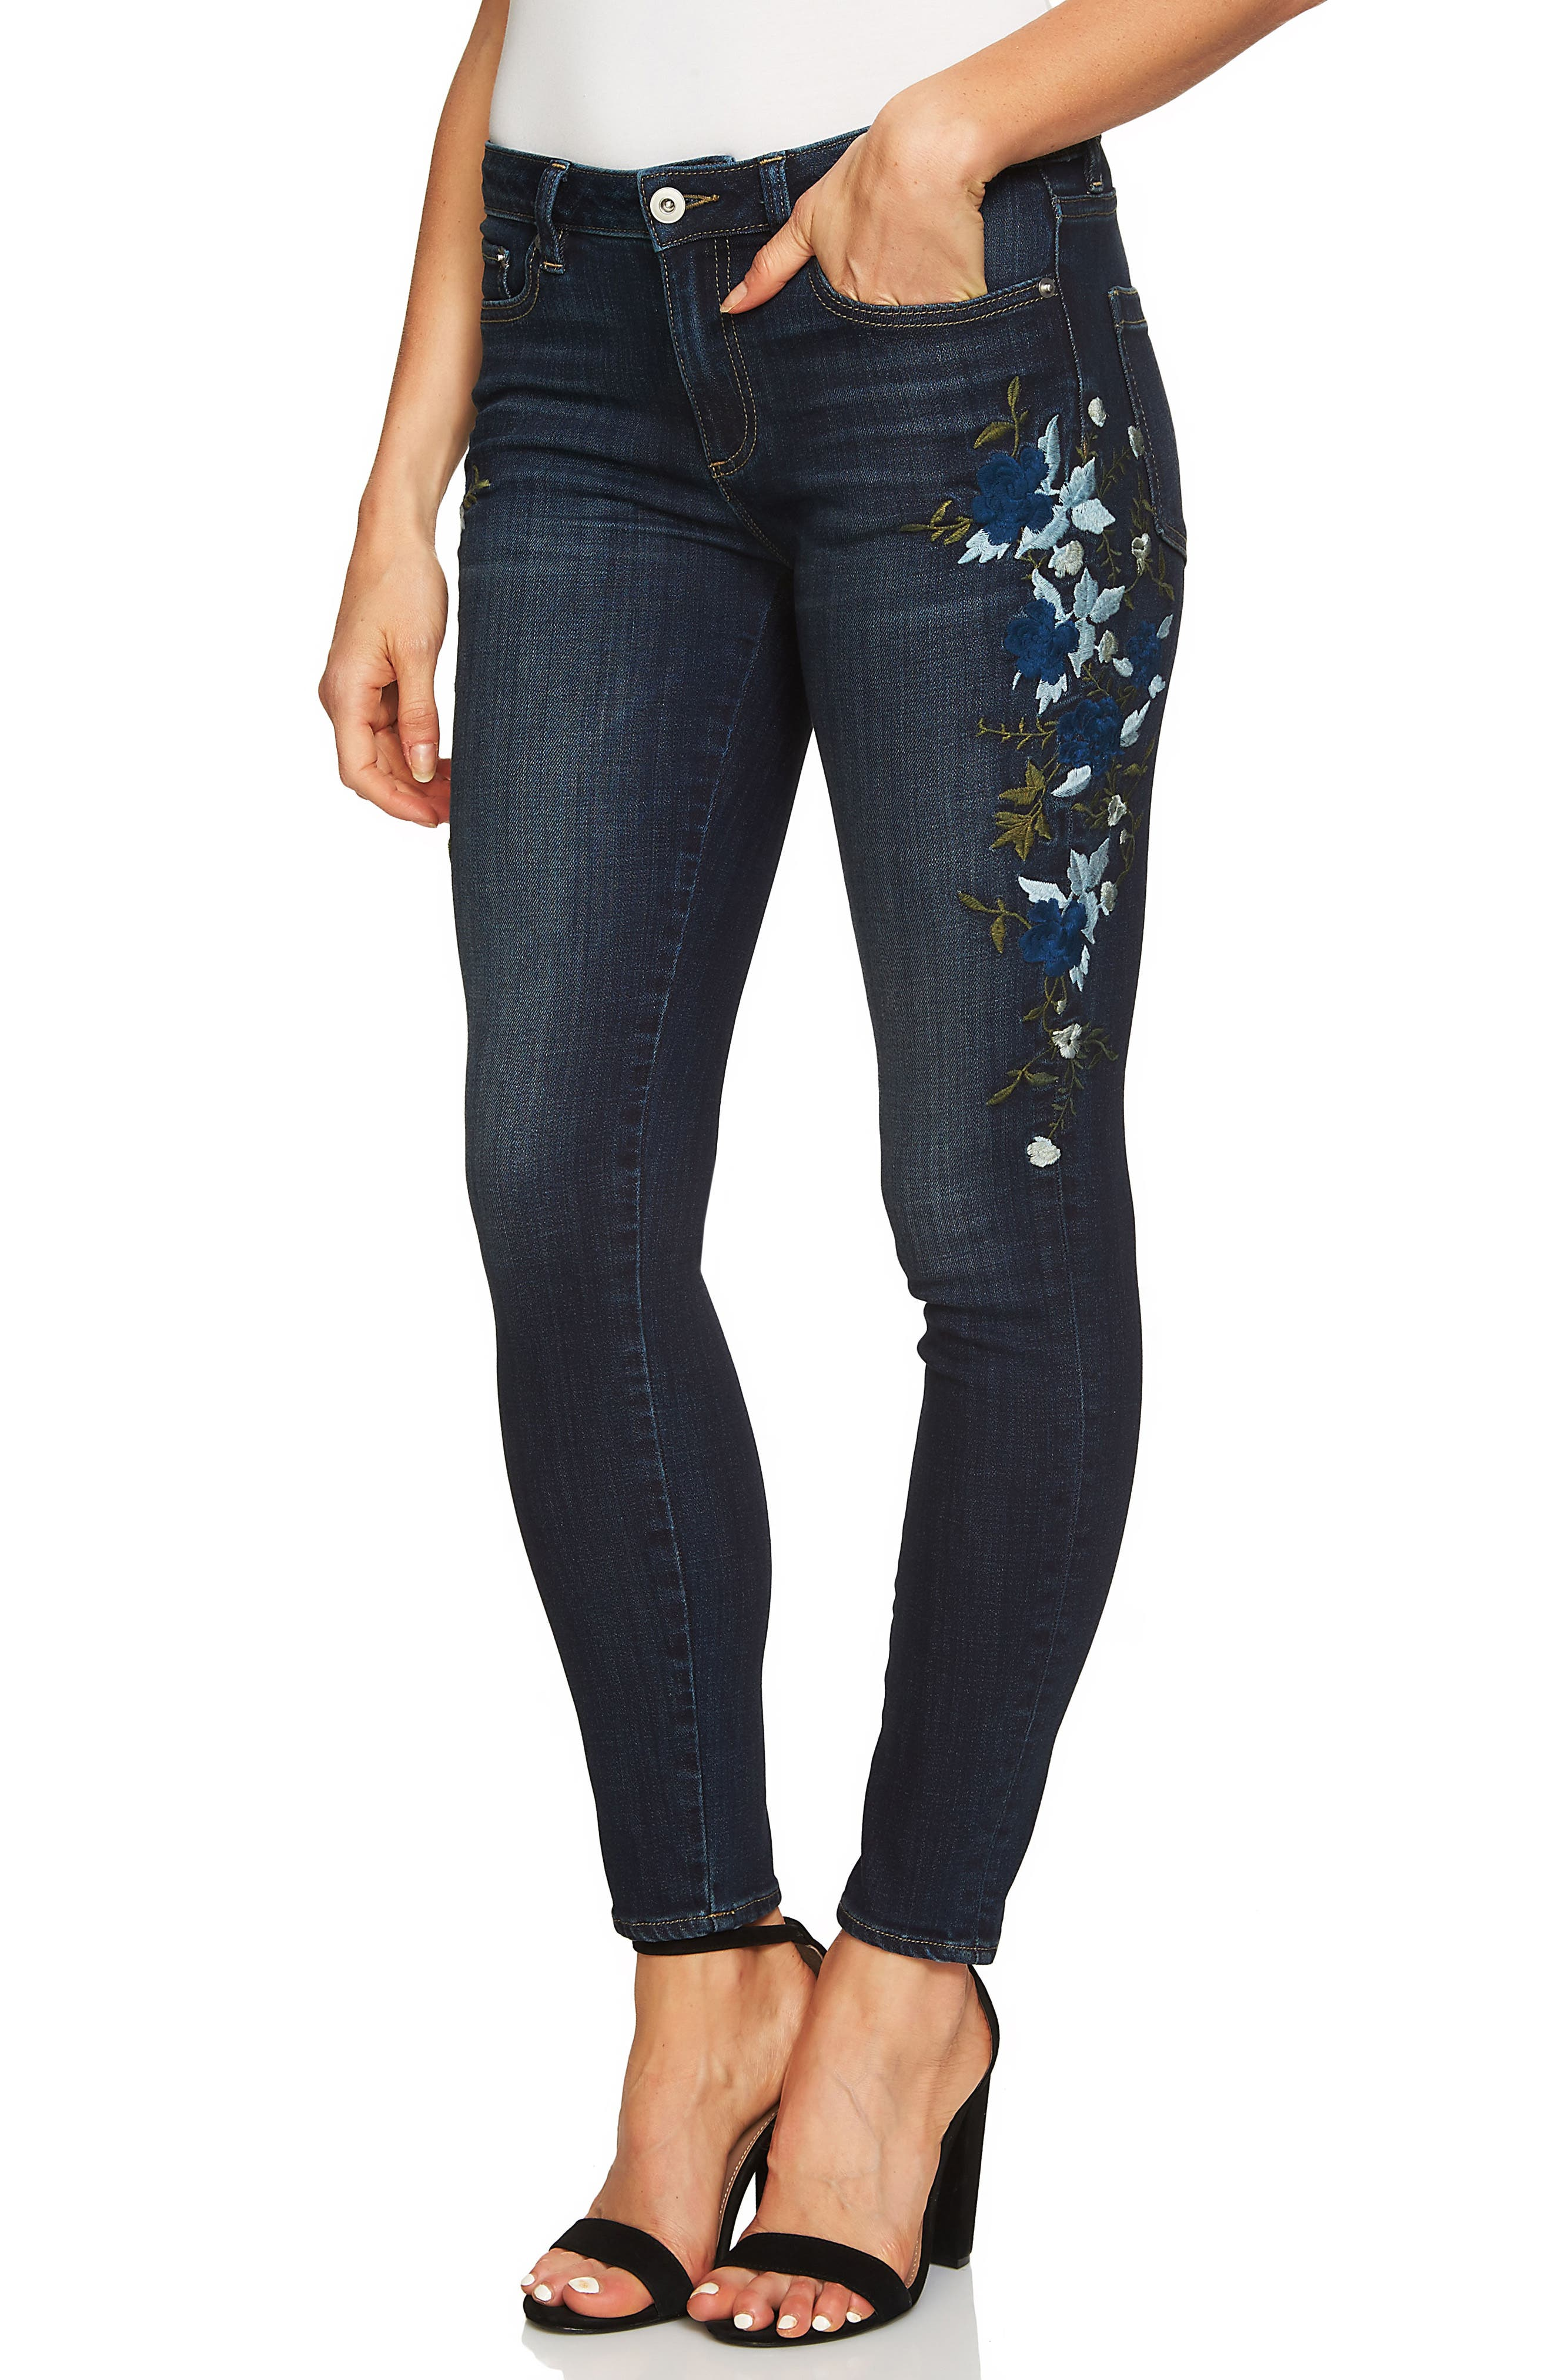 Indigo Denim Floral Embroidered Jeans,                             Main thumbnail 1, color,                             428